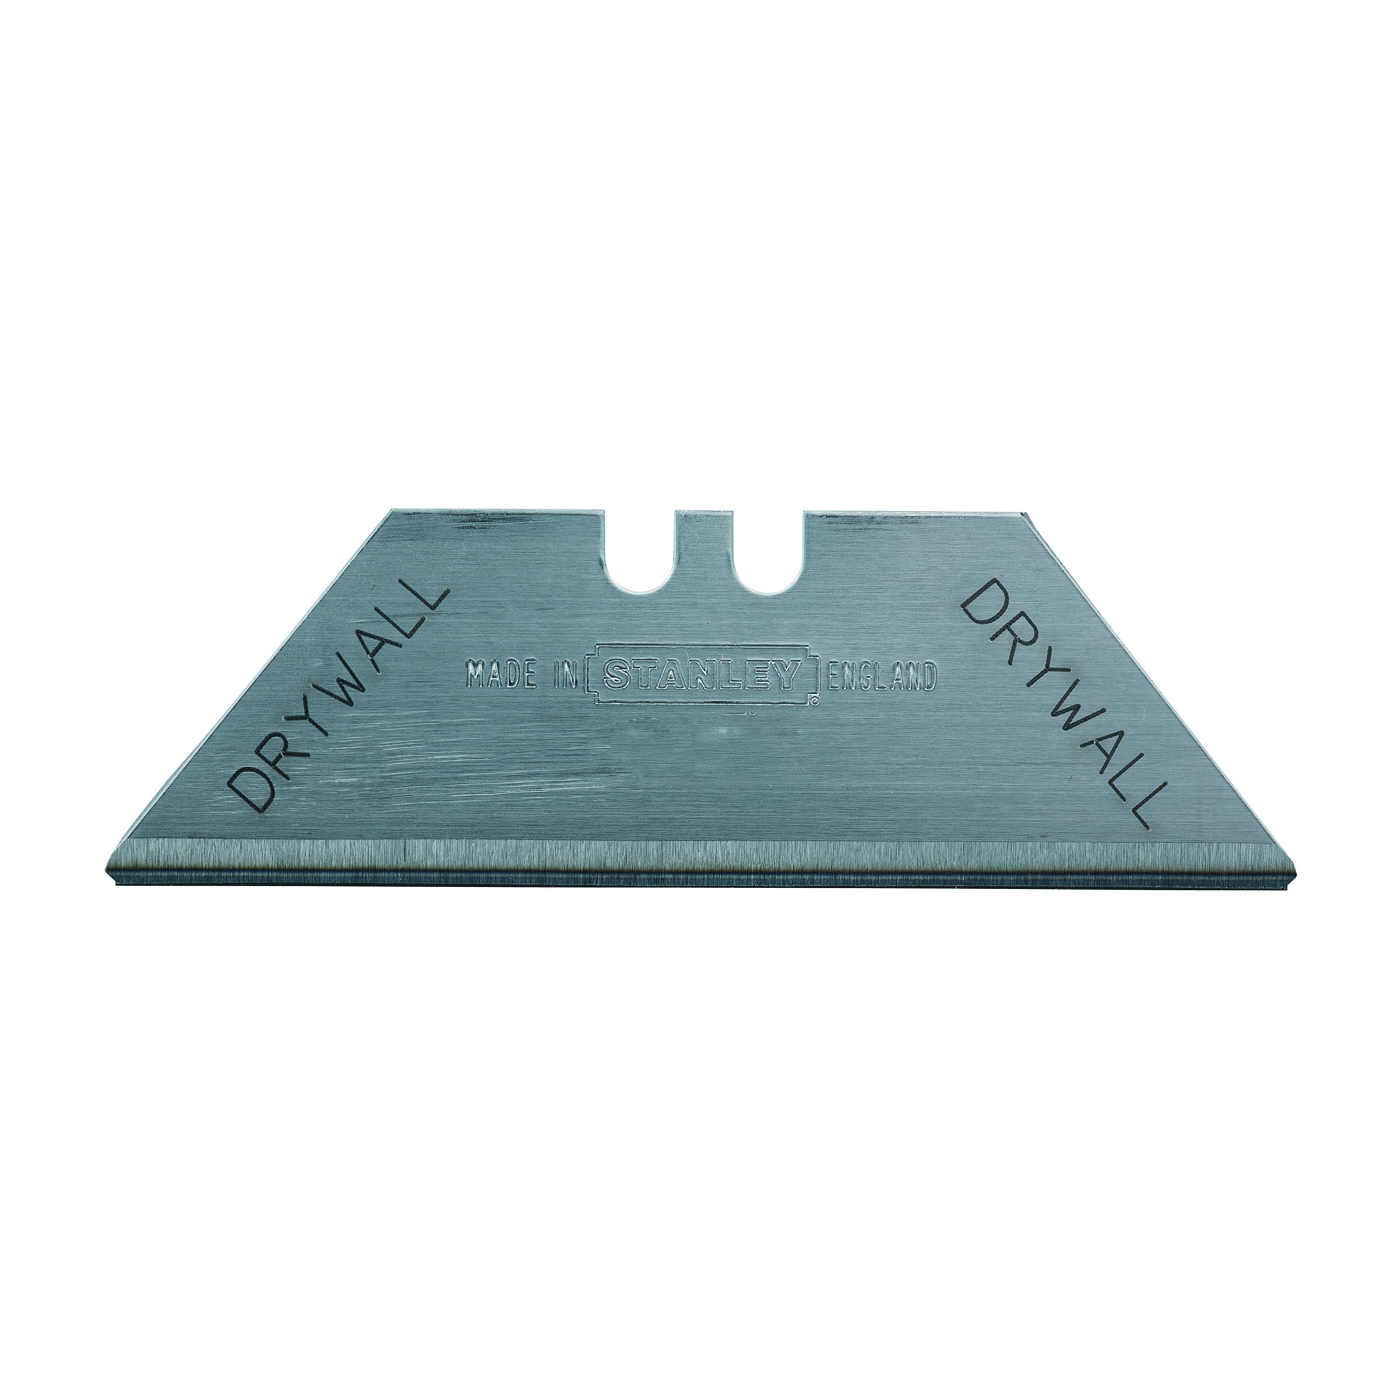 Picture of STANLEY 11-937 Utility Blade, 2-3/8 in L, HCS, 2 -Point, 3/PK, Carded